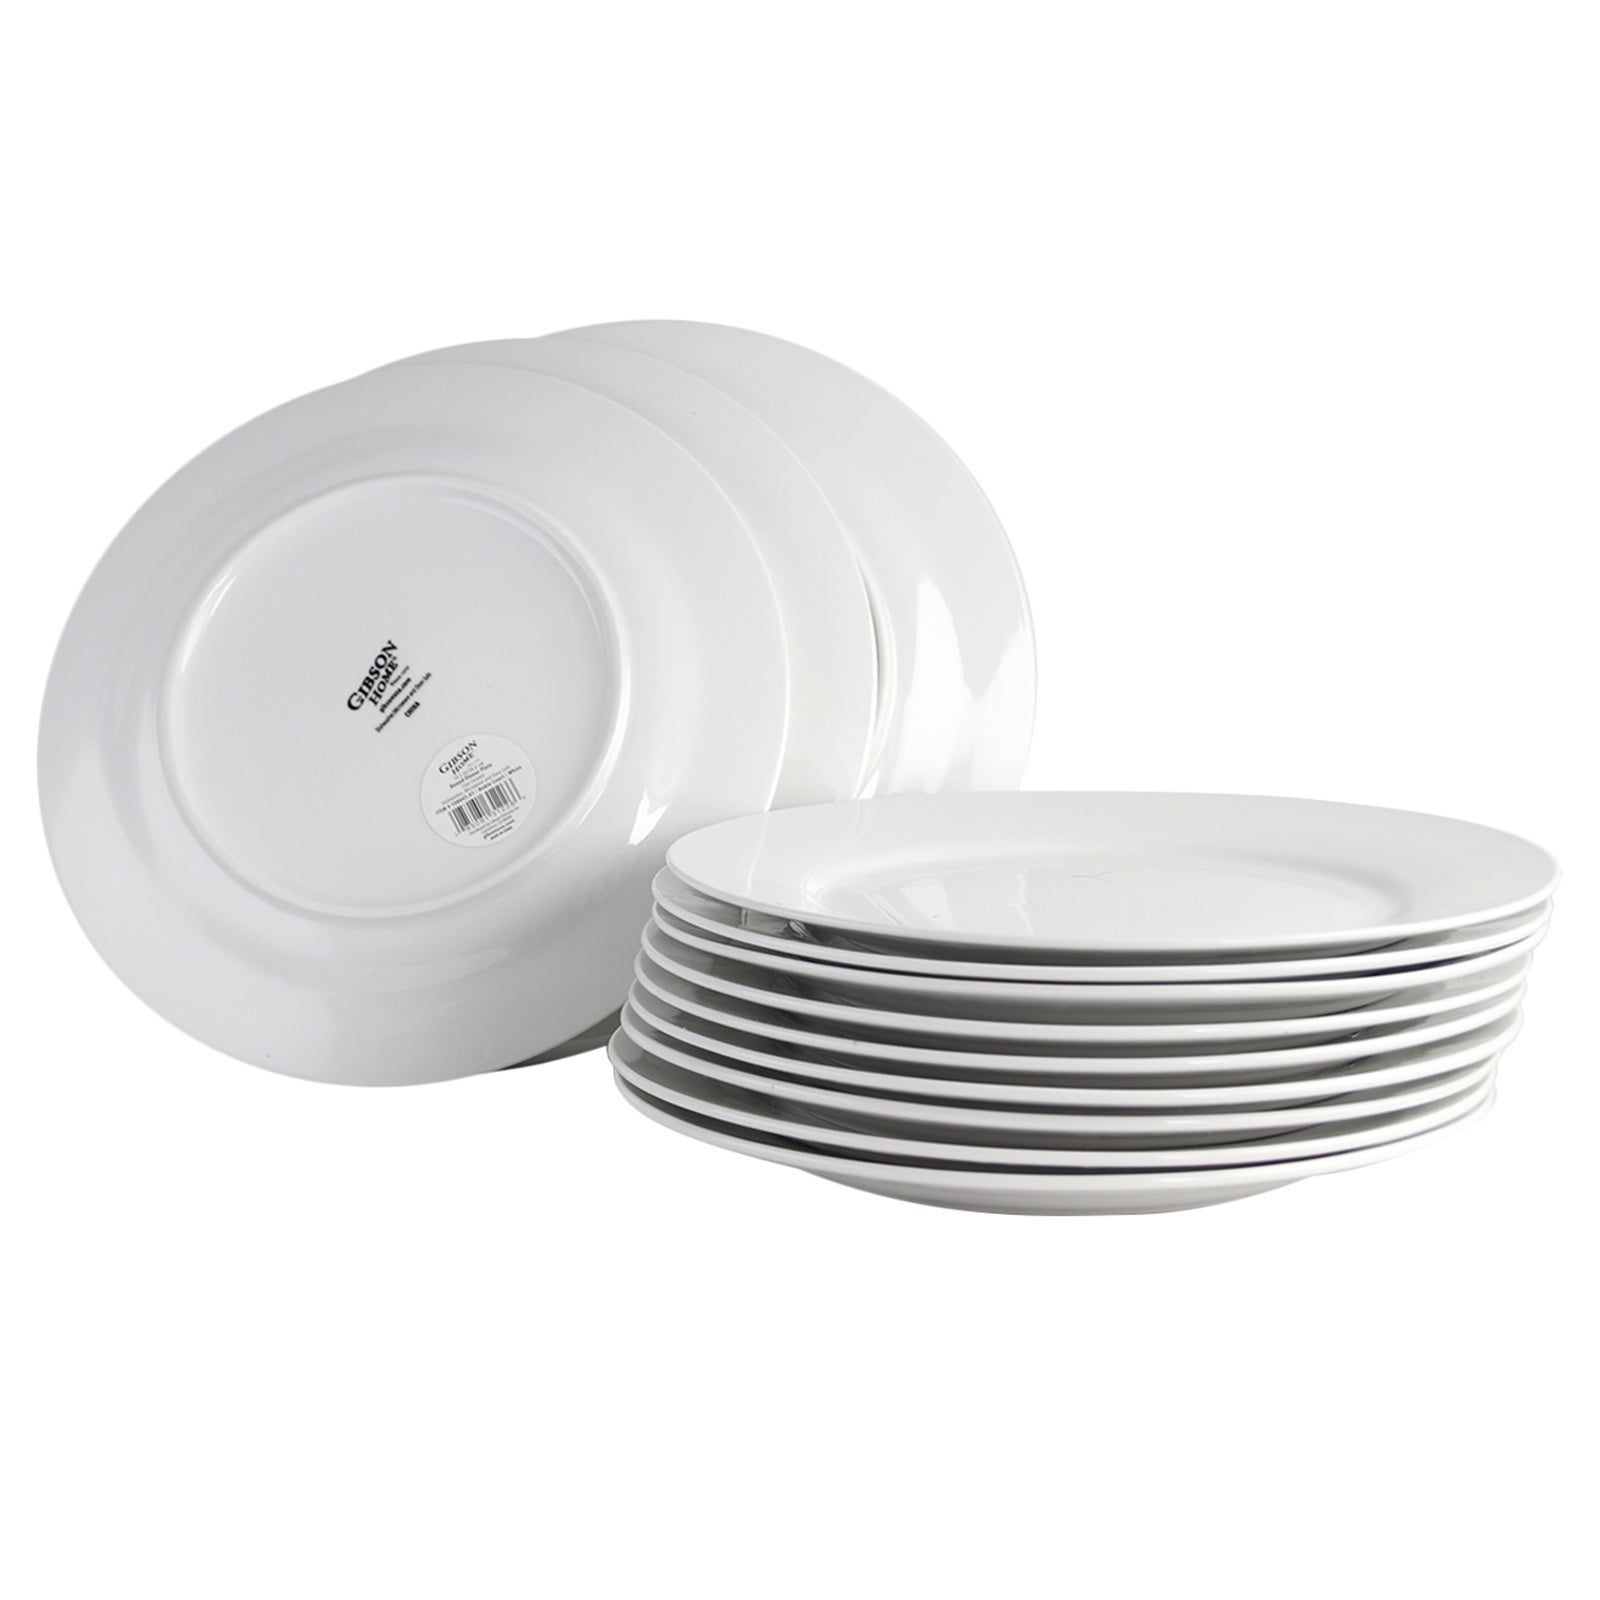 Shop For Gibson Home Noble Court 12 Piece Dinner Plate Set In White Get Free Delivery On Everything At Overstock Your Online Kitchen Dining Outlet Store Get 5 In Rewards With Club O 31994855